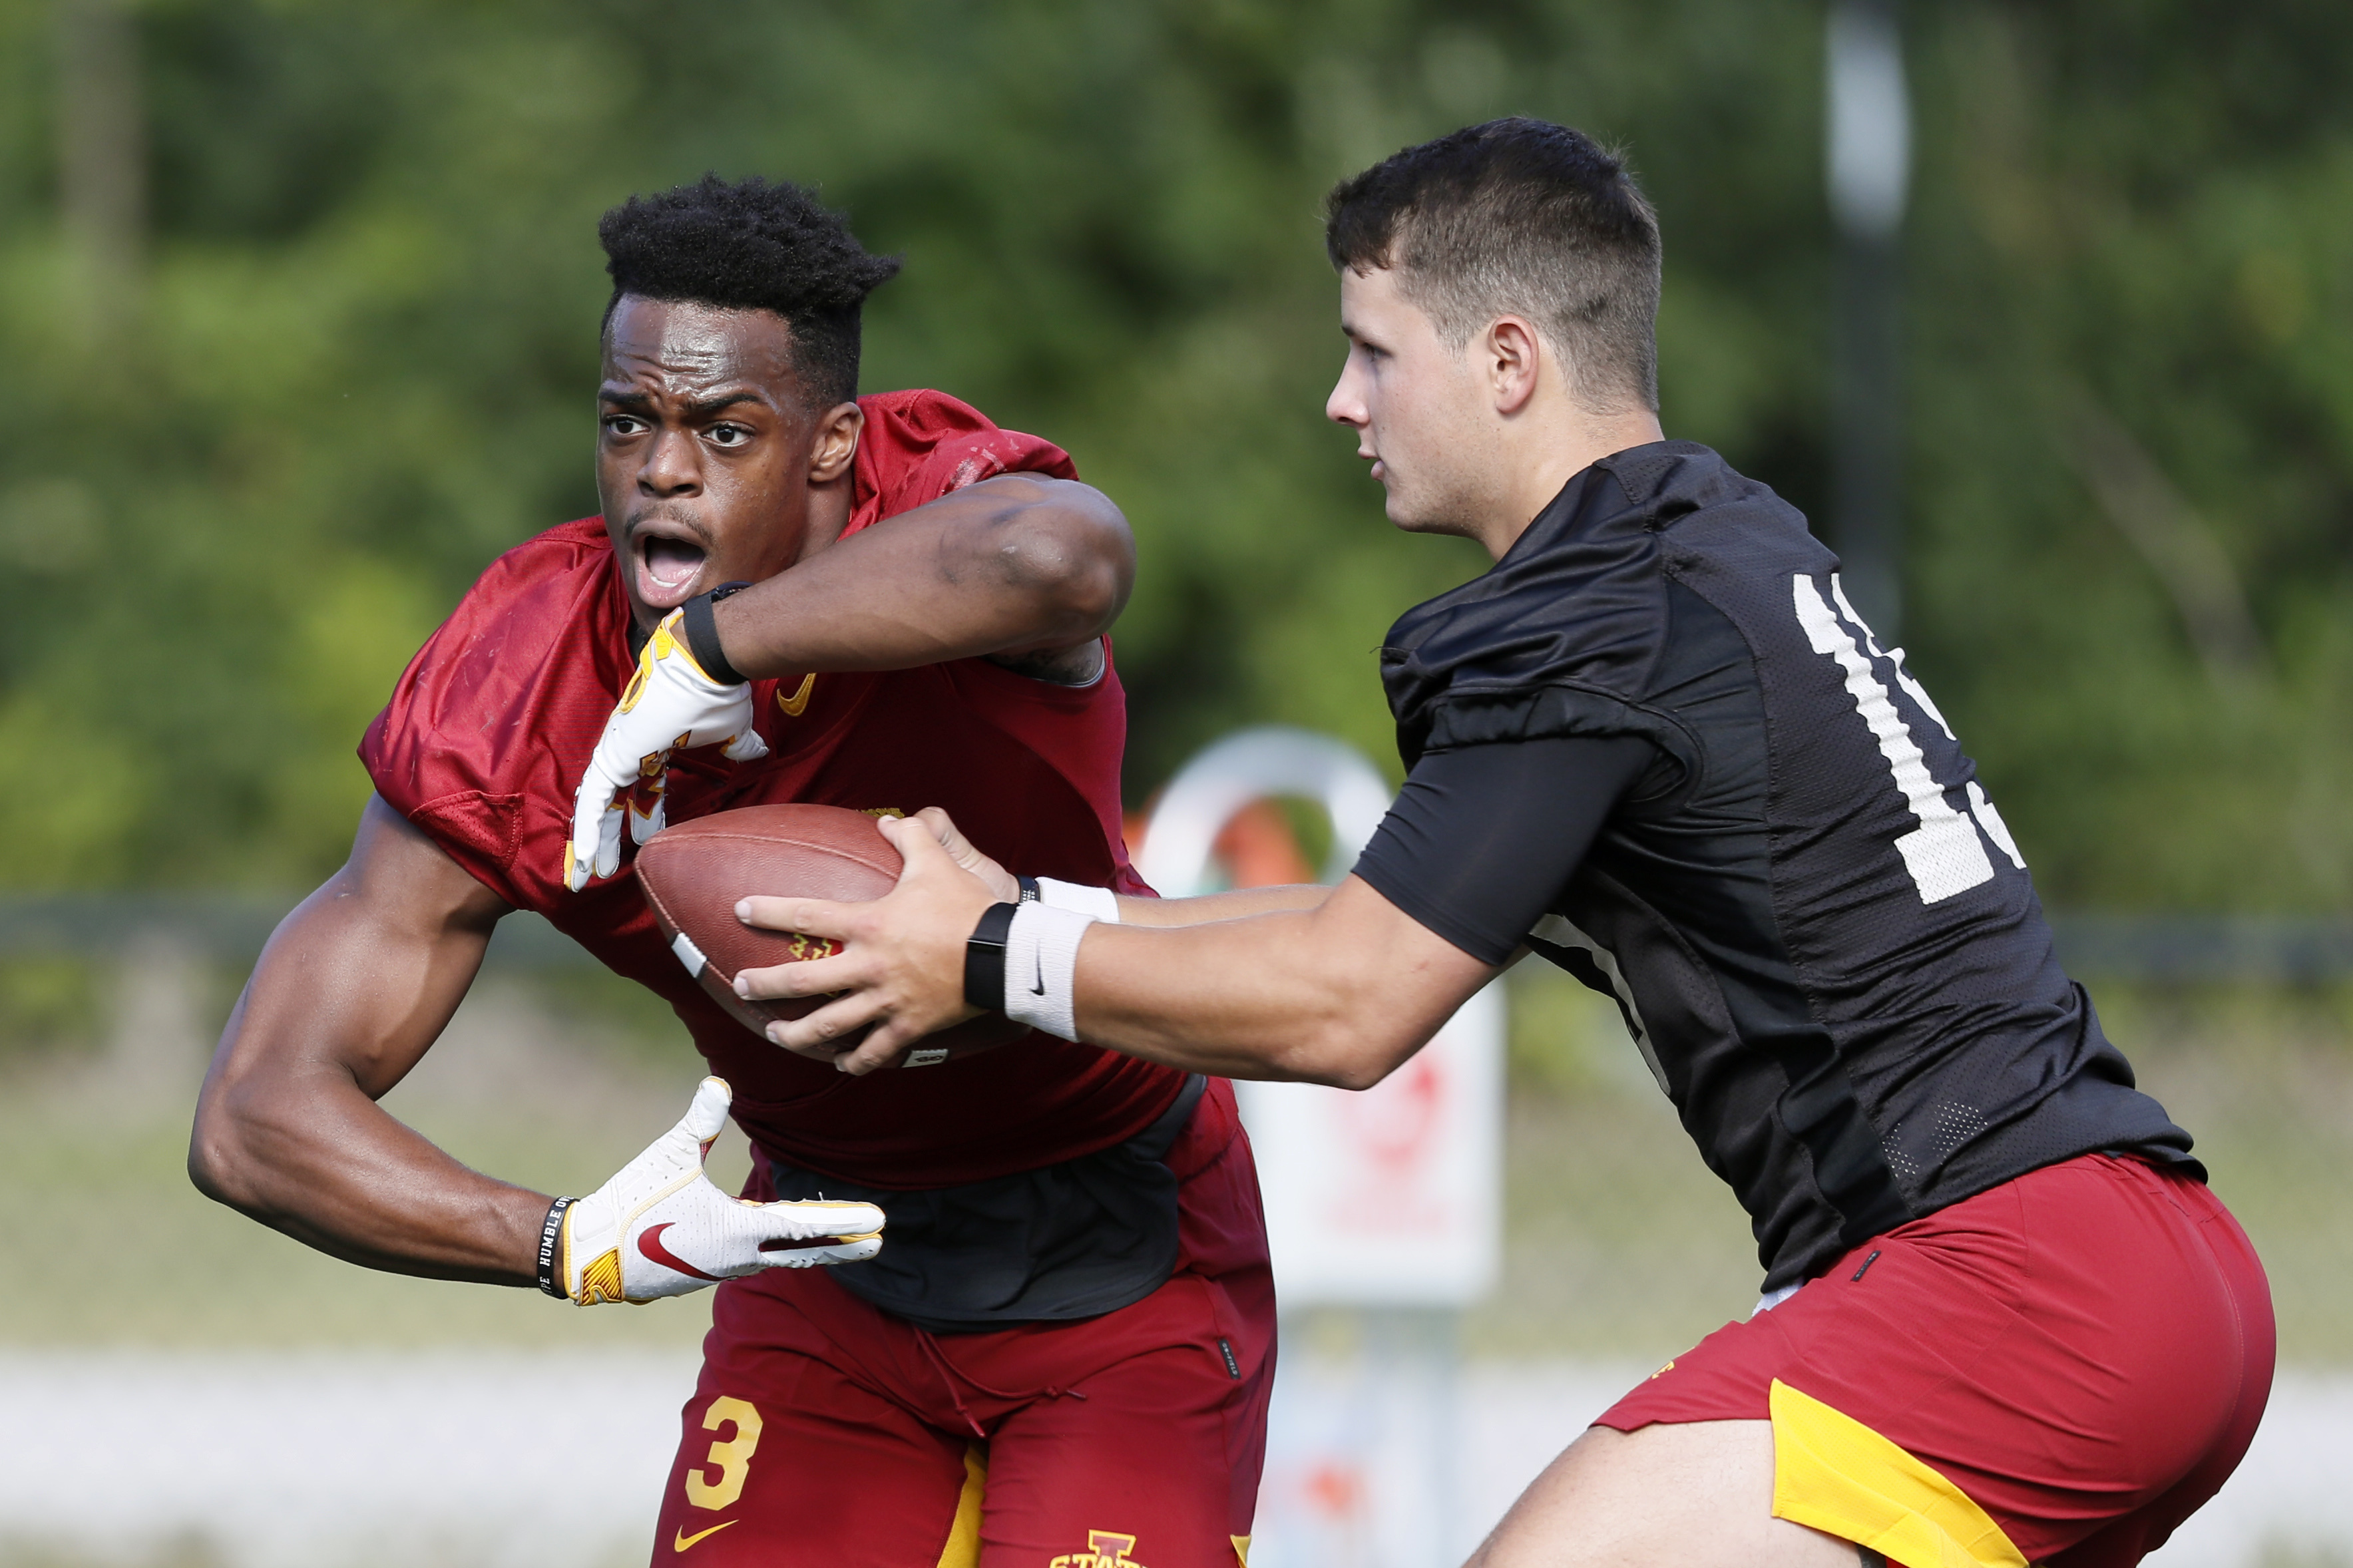 Iowa State still looking at 5 RBs to replace Montgomery